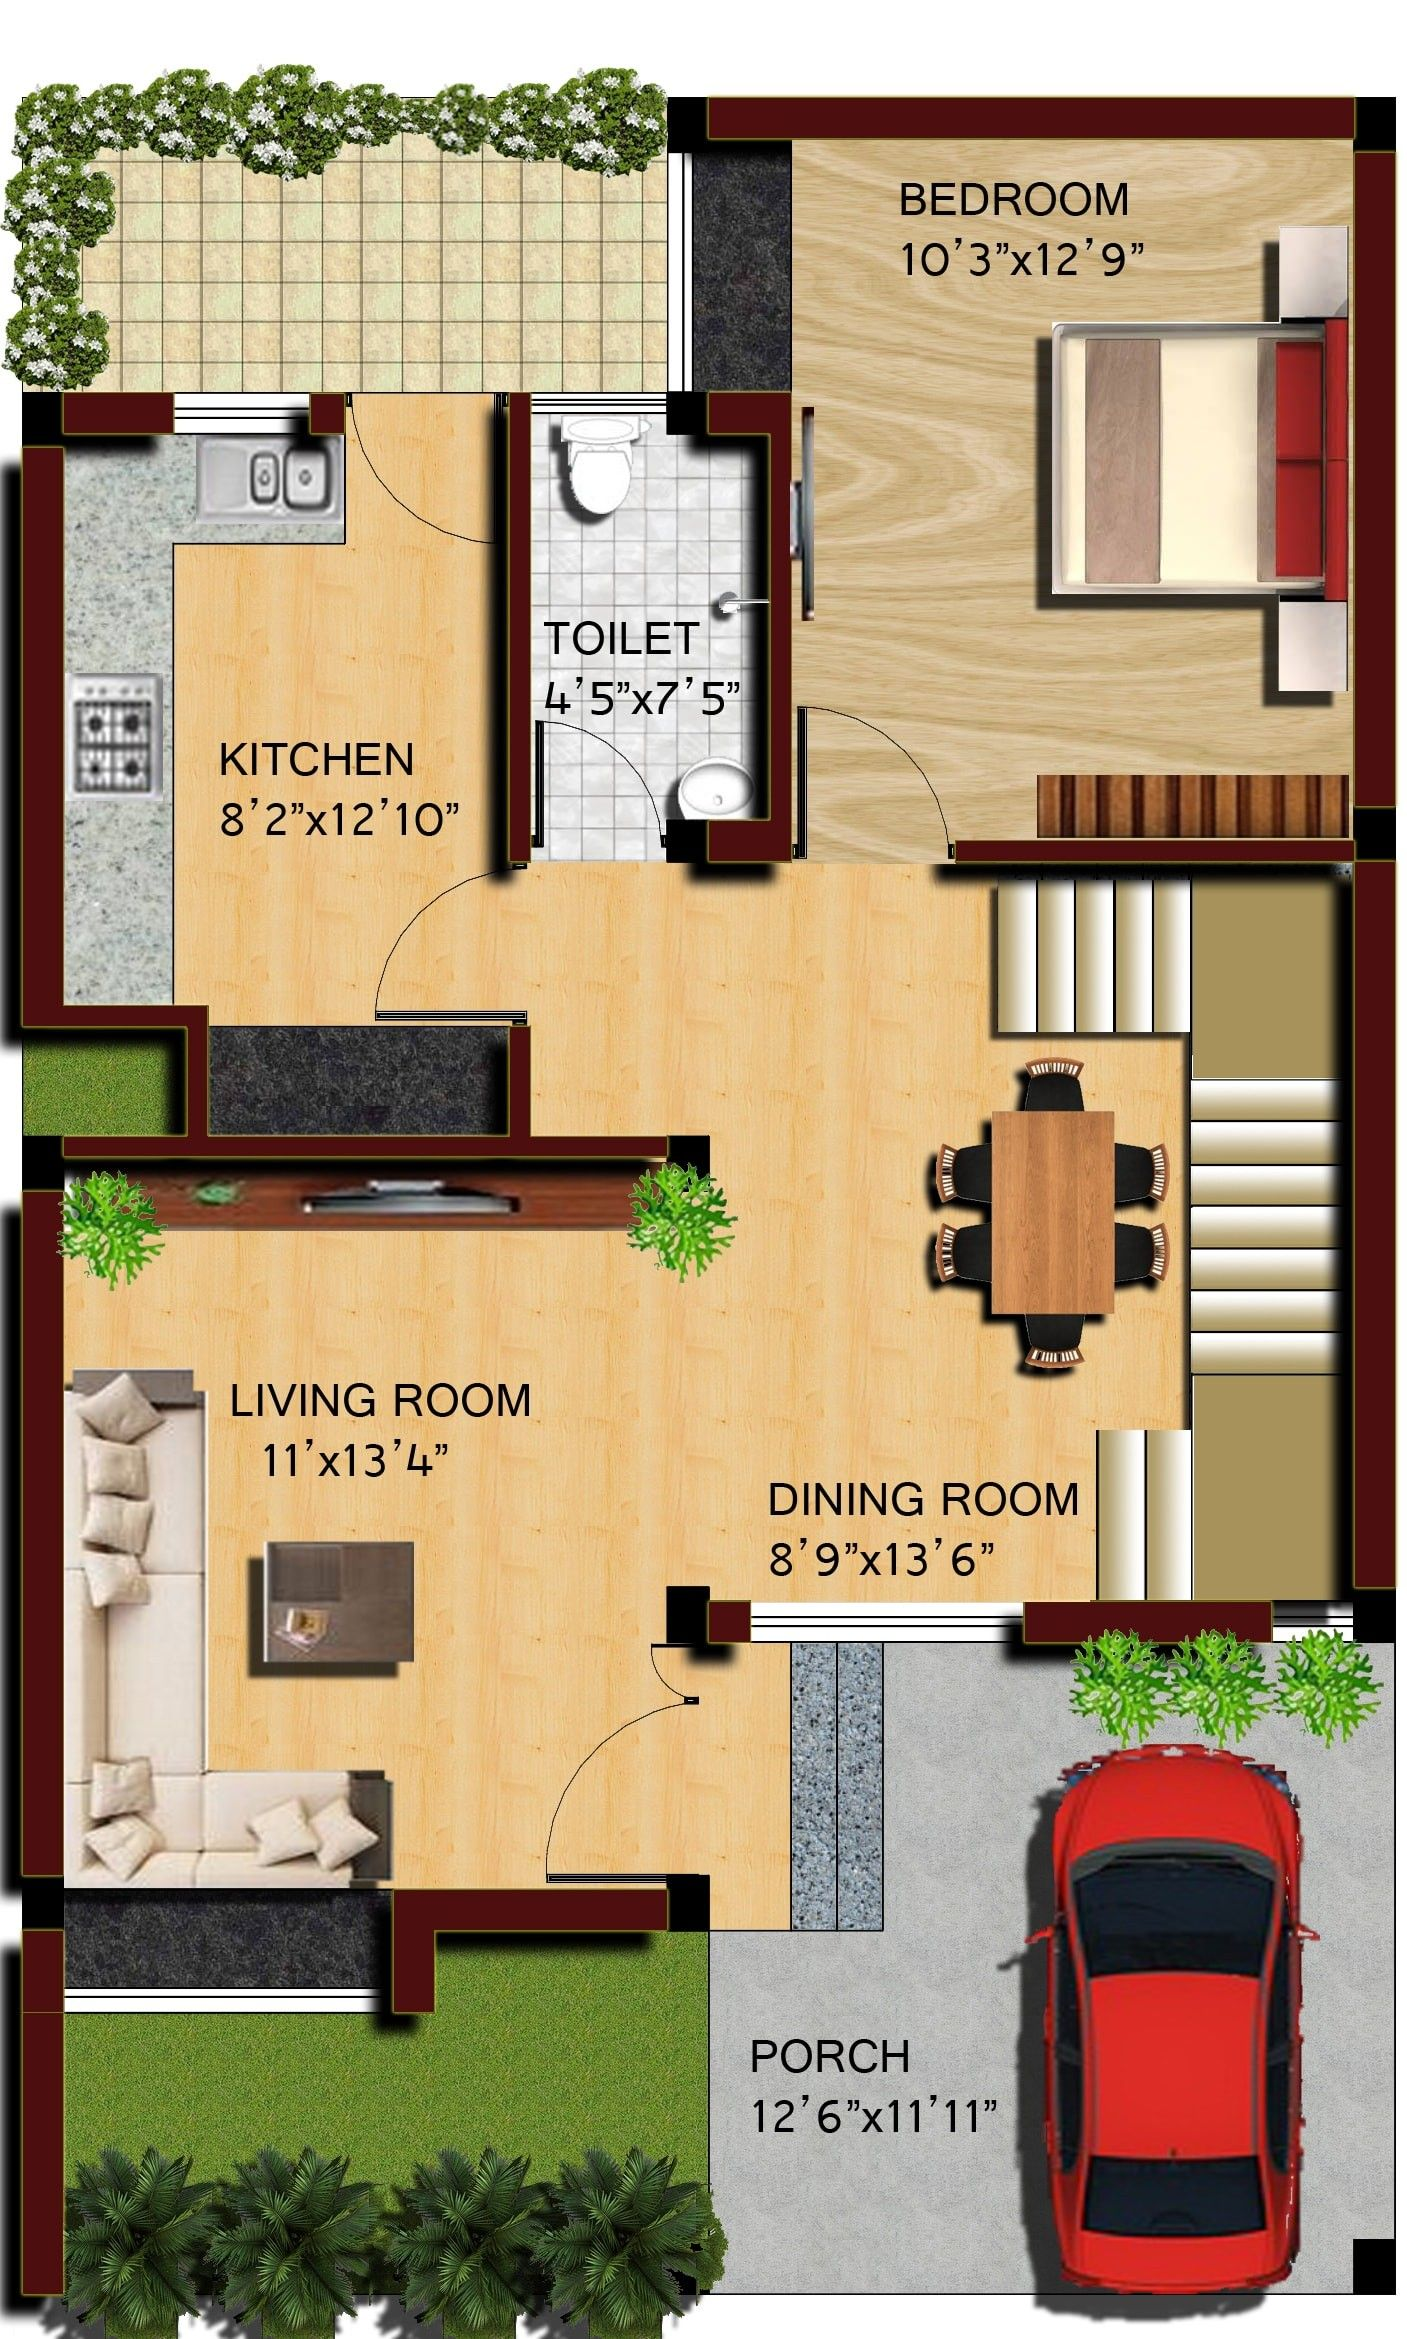 Extraordinary  house plan images best inspiration home design small floor plans duplex also maps in rh pinterest